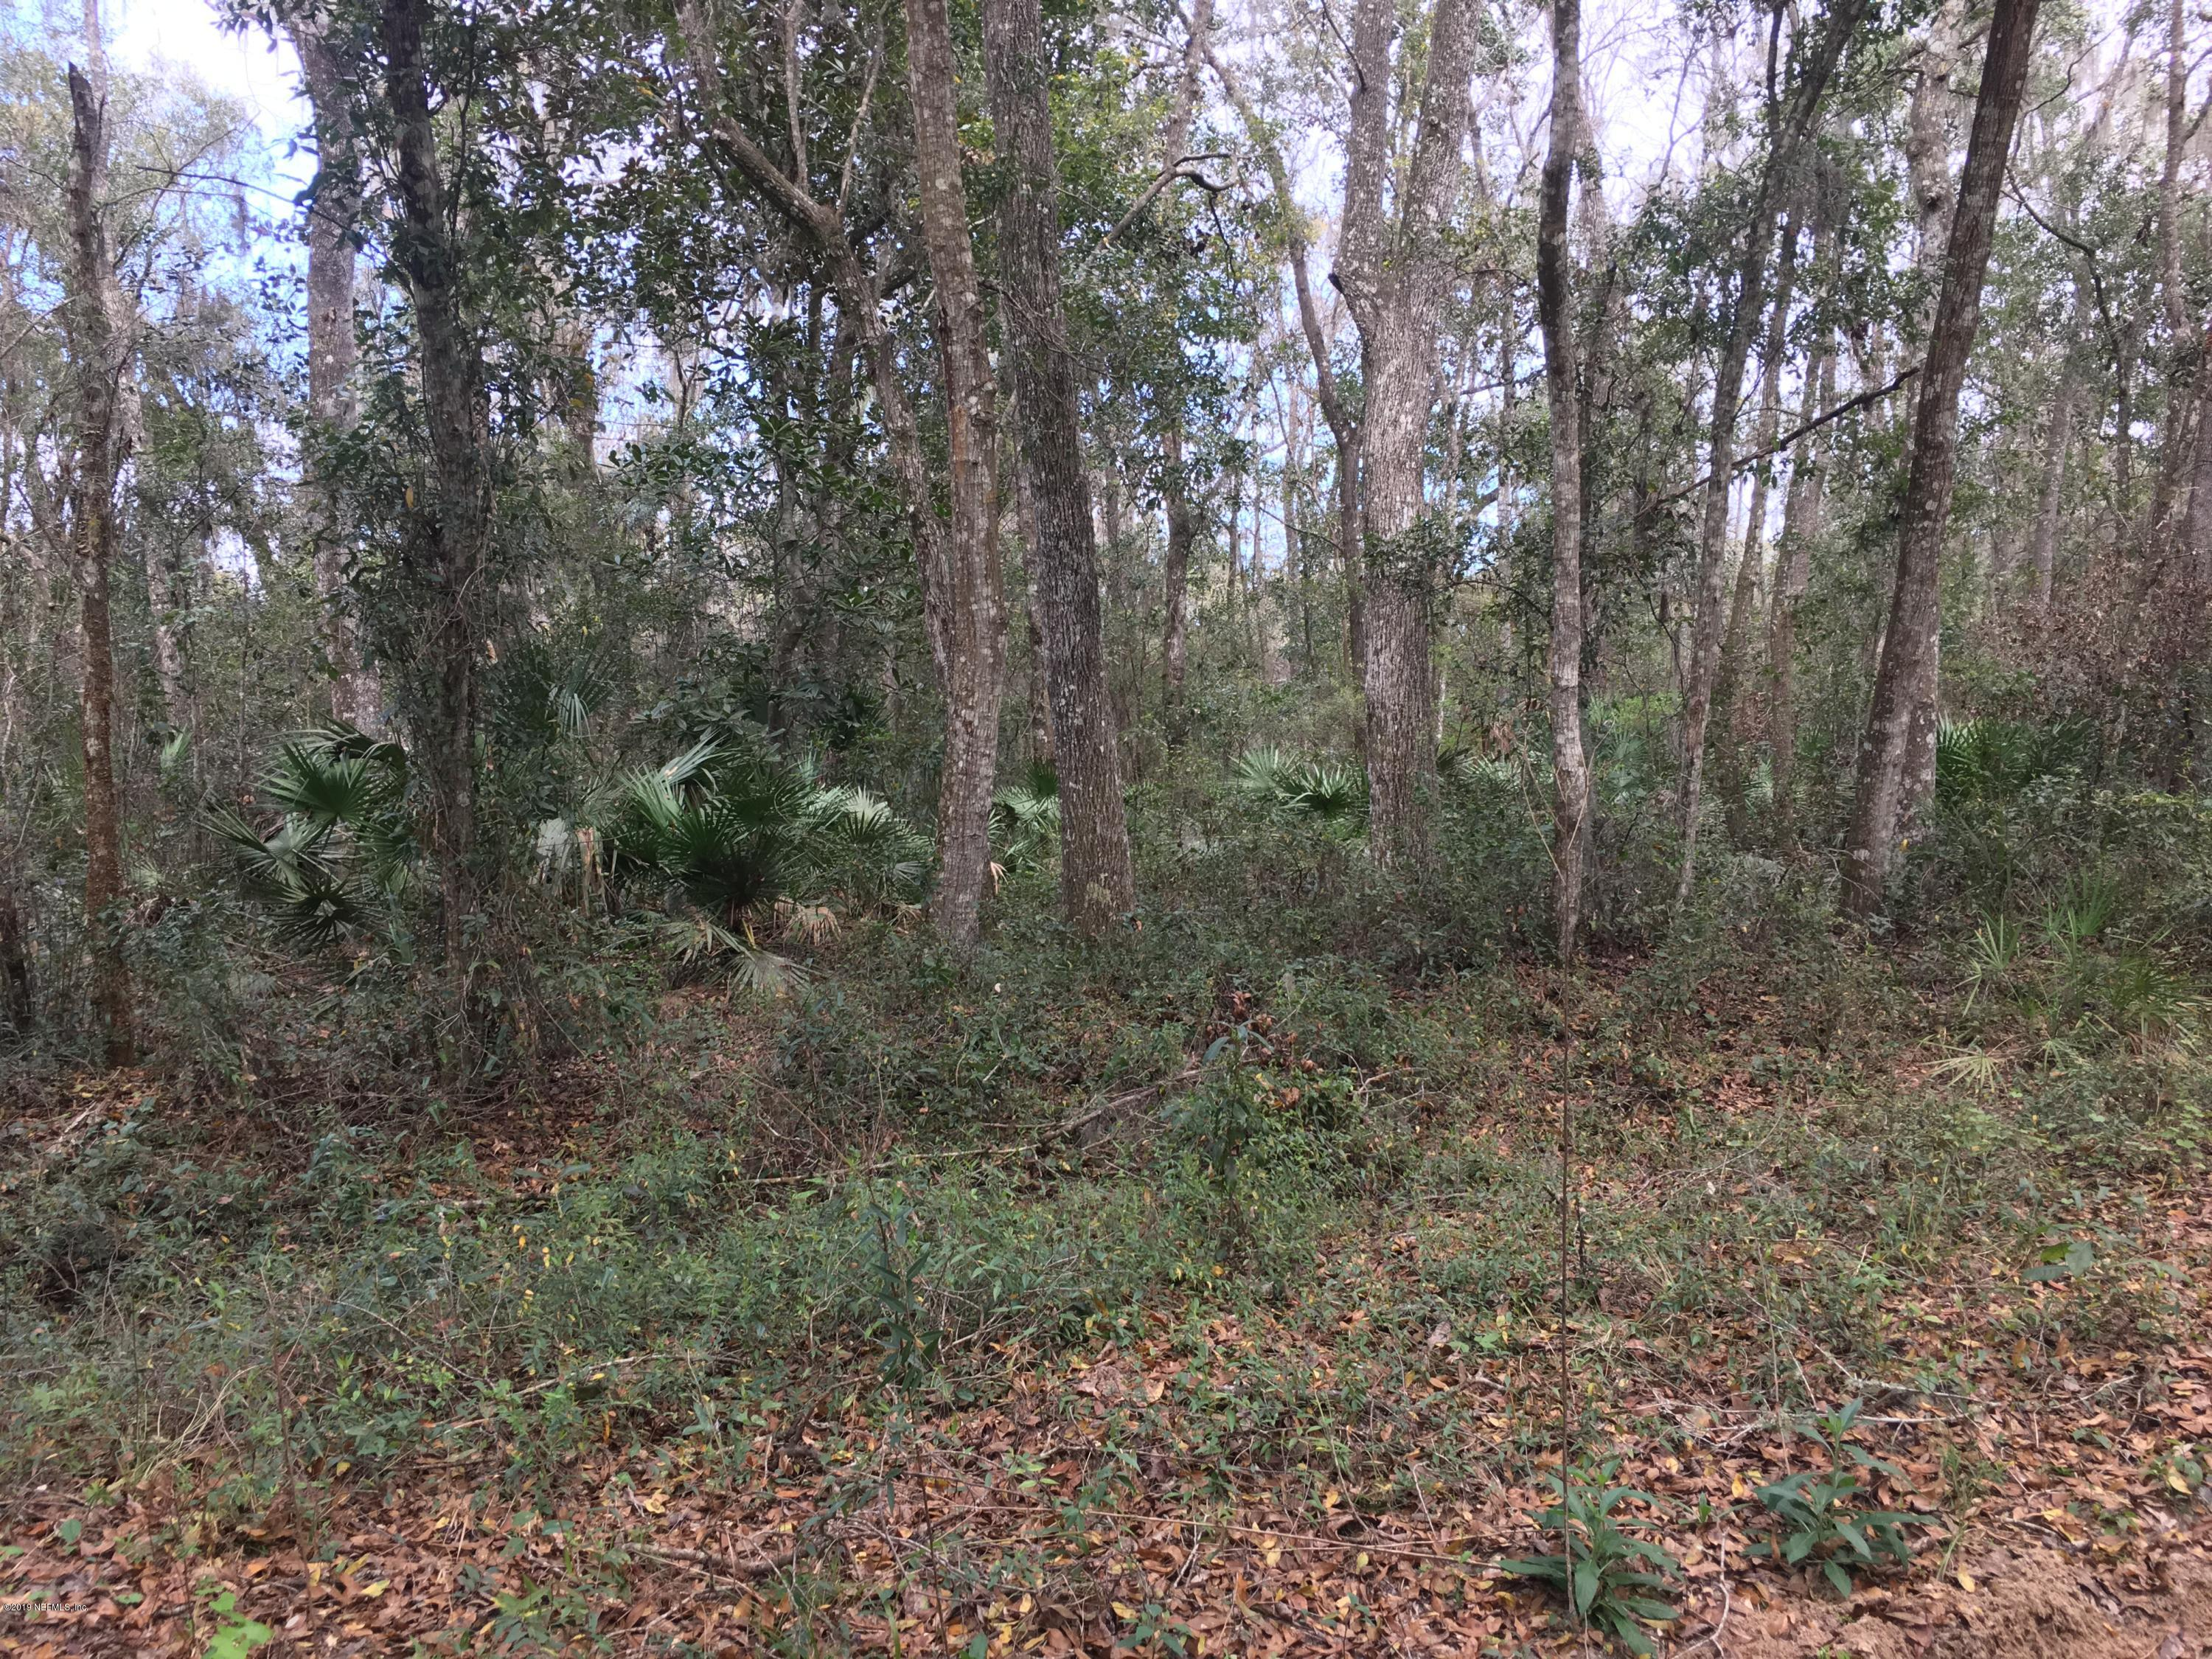 124 INDIAN MOUND, SATSUMA, FLORIDA 32189, ,Vacant land,For sale,INDIAN MOUND,916743